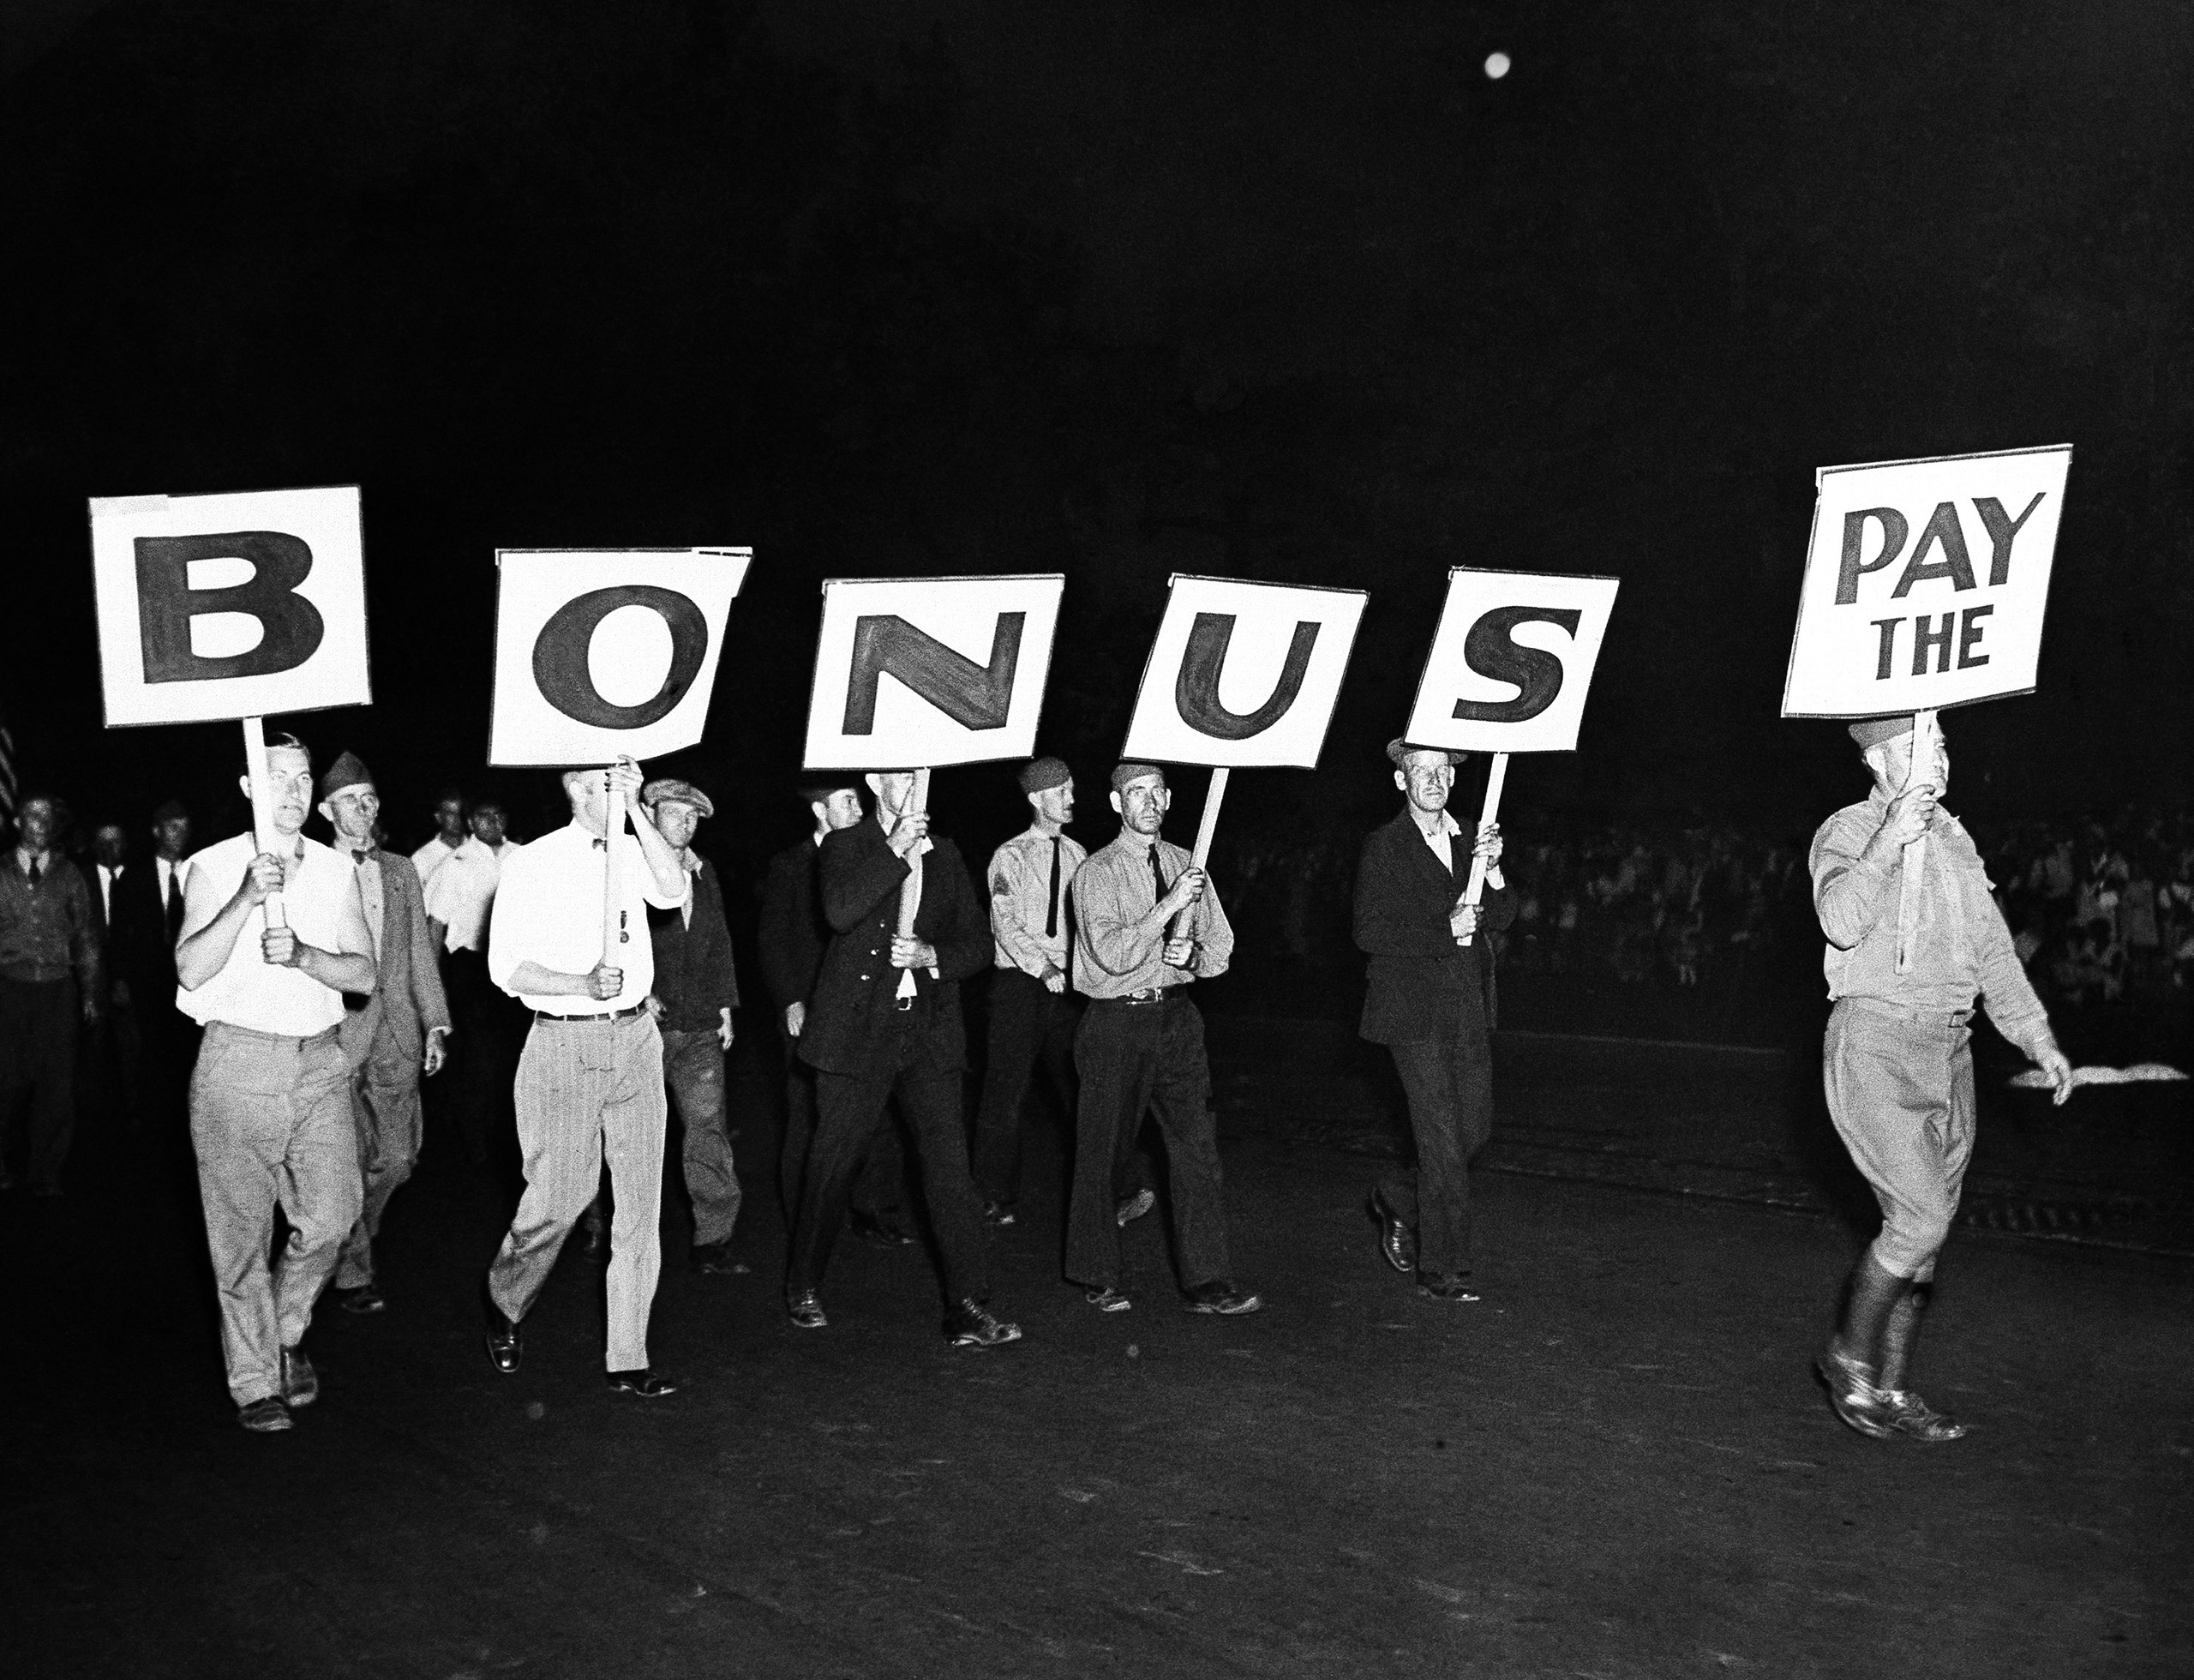 The  Pay The Bonus  sign carried by a group of World War veterans was typical of the banners of the former soldiers who marched to Washington to press their demands for payments of the soldiers' bonus.  June 7, 1932.